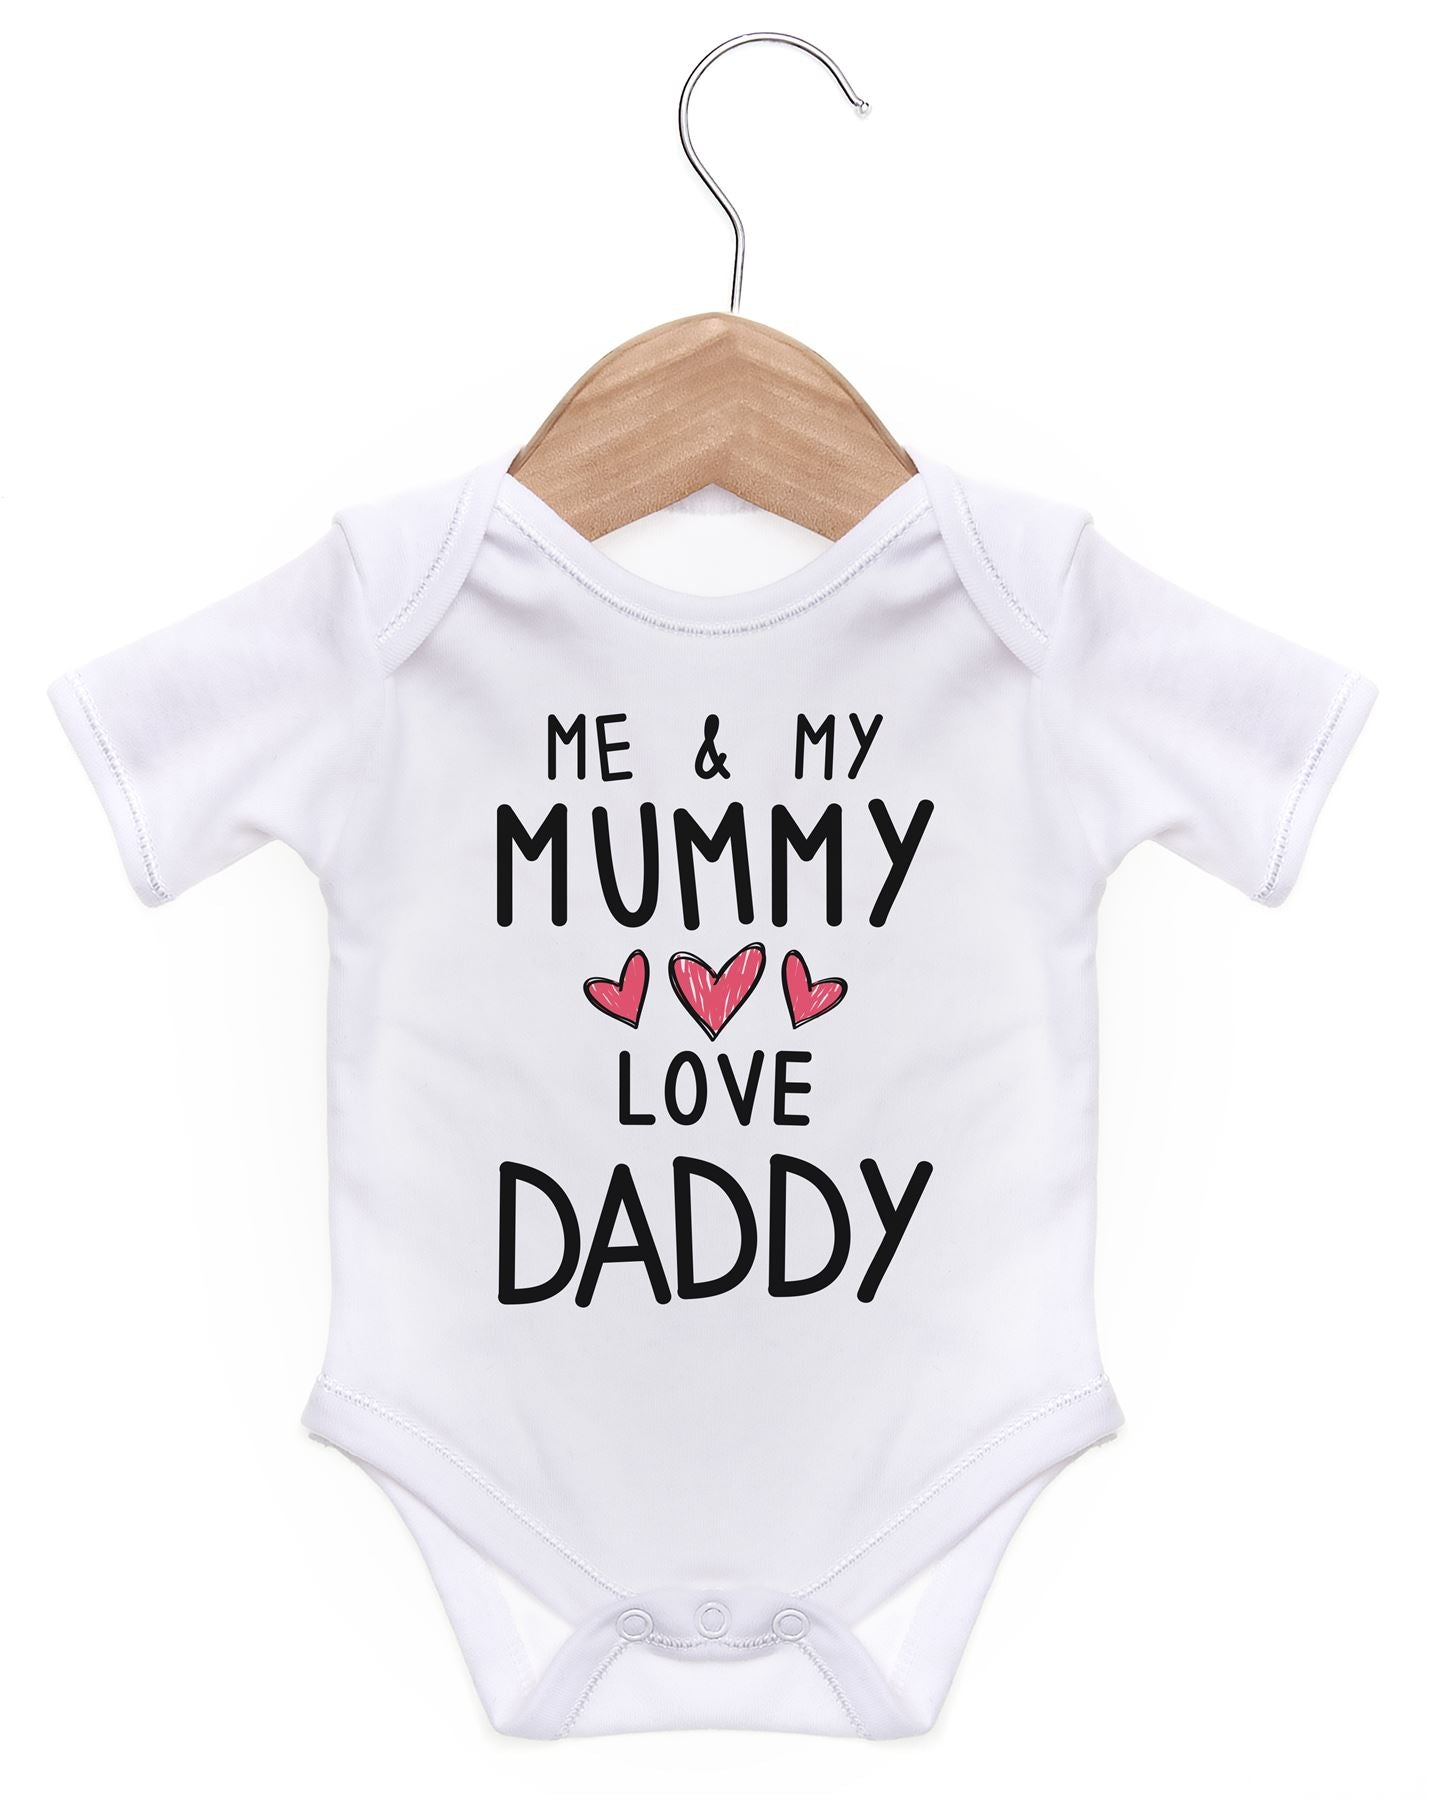 3b0355f8d Me And My Mummy Love Daddy Short Sleeve Bodysuit / Baby Grow For Baby Boy  Or Girl